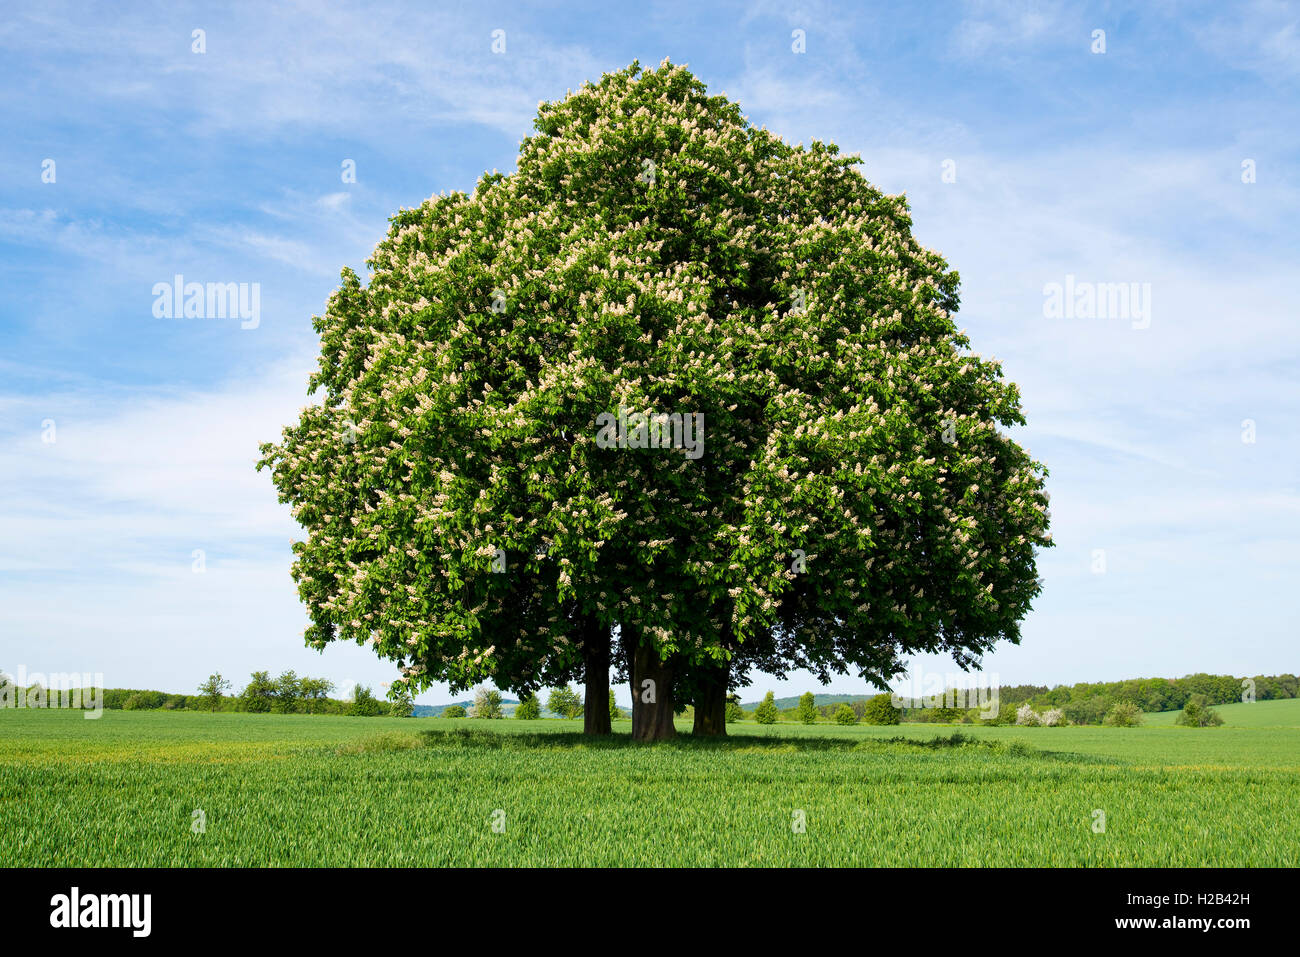 Horse-chestnut or conker tree (Aesculus hippocastanum) flowering, group of trees in grain field, Hötzelsroda - Stock Image